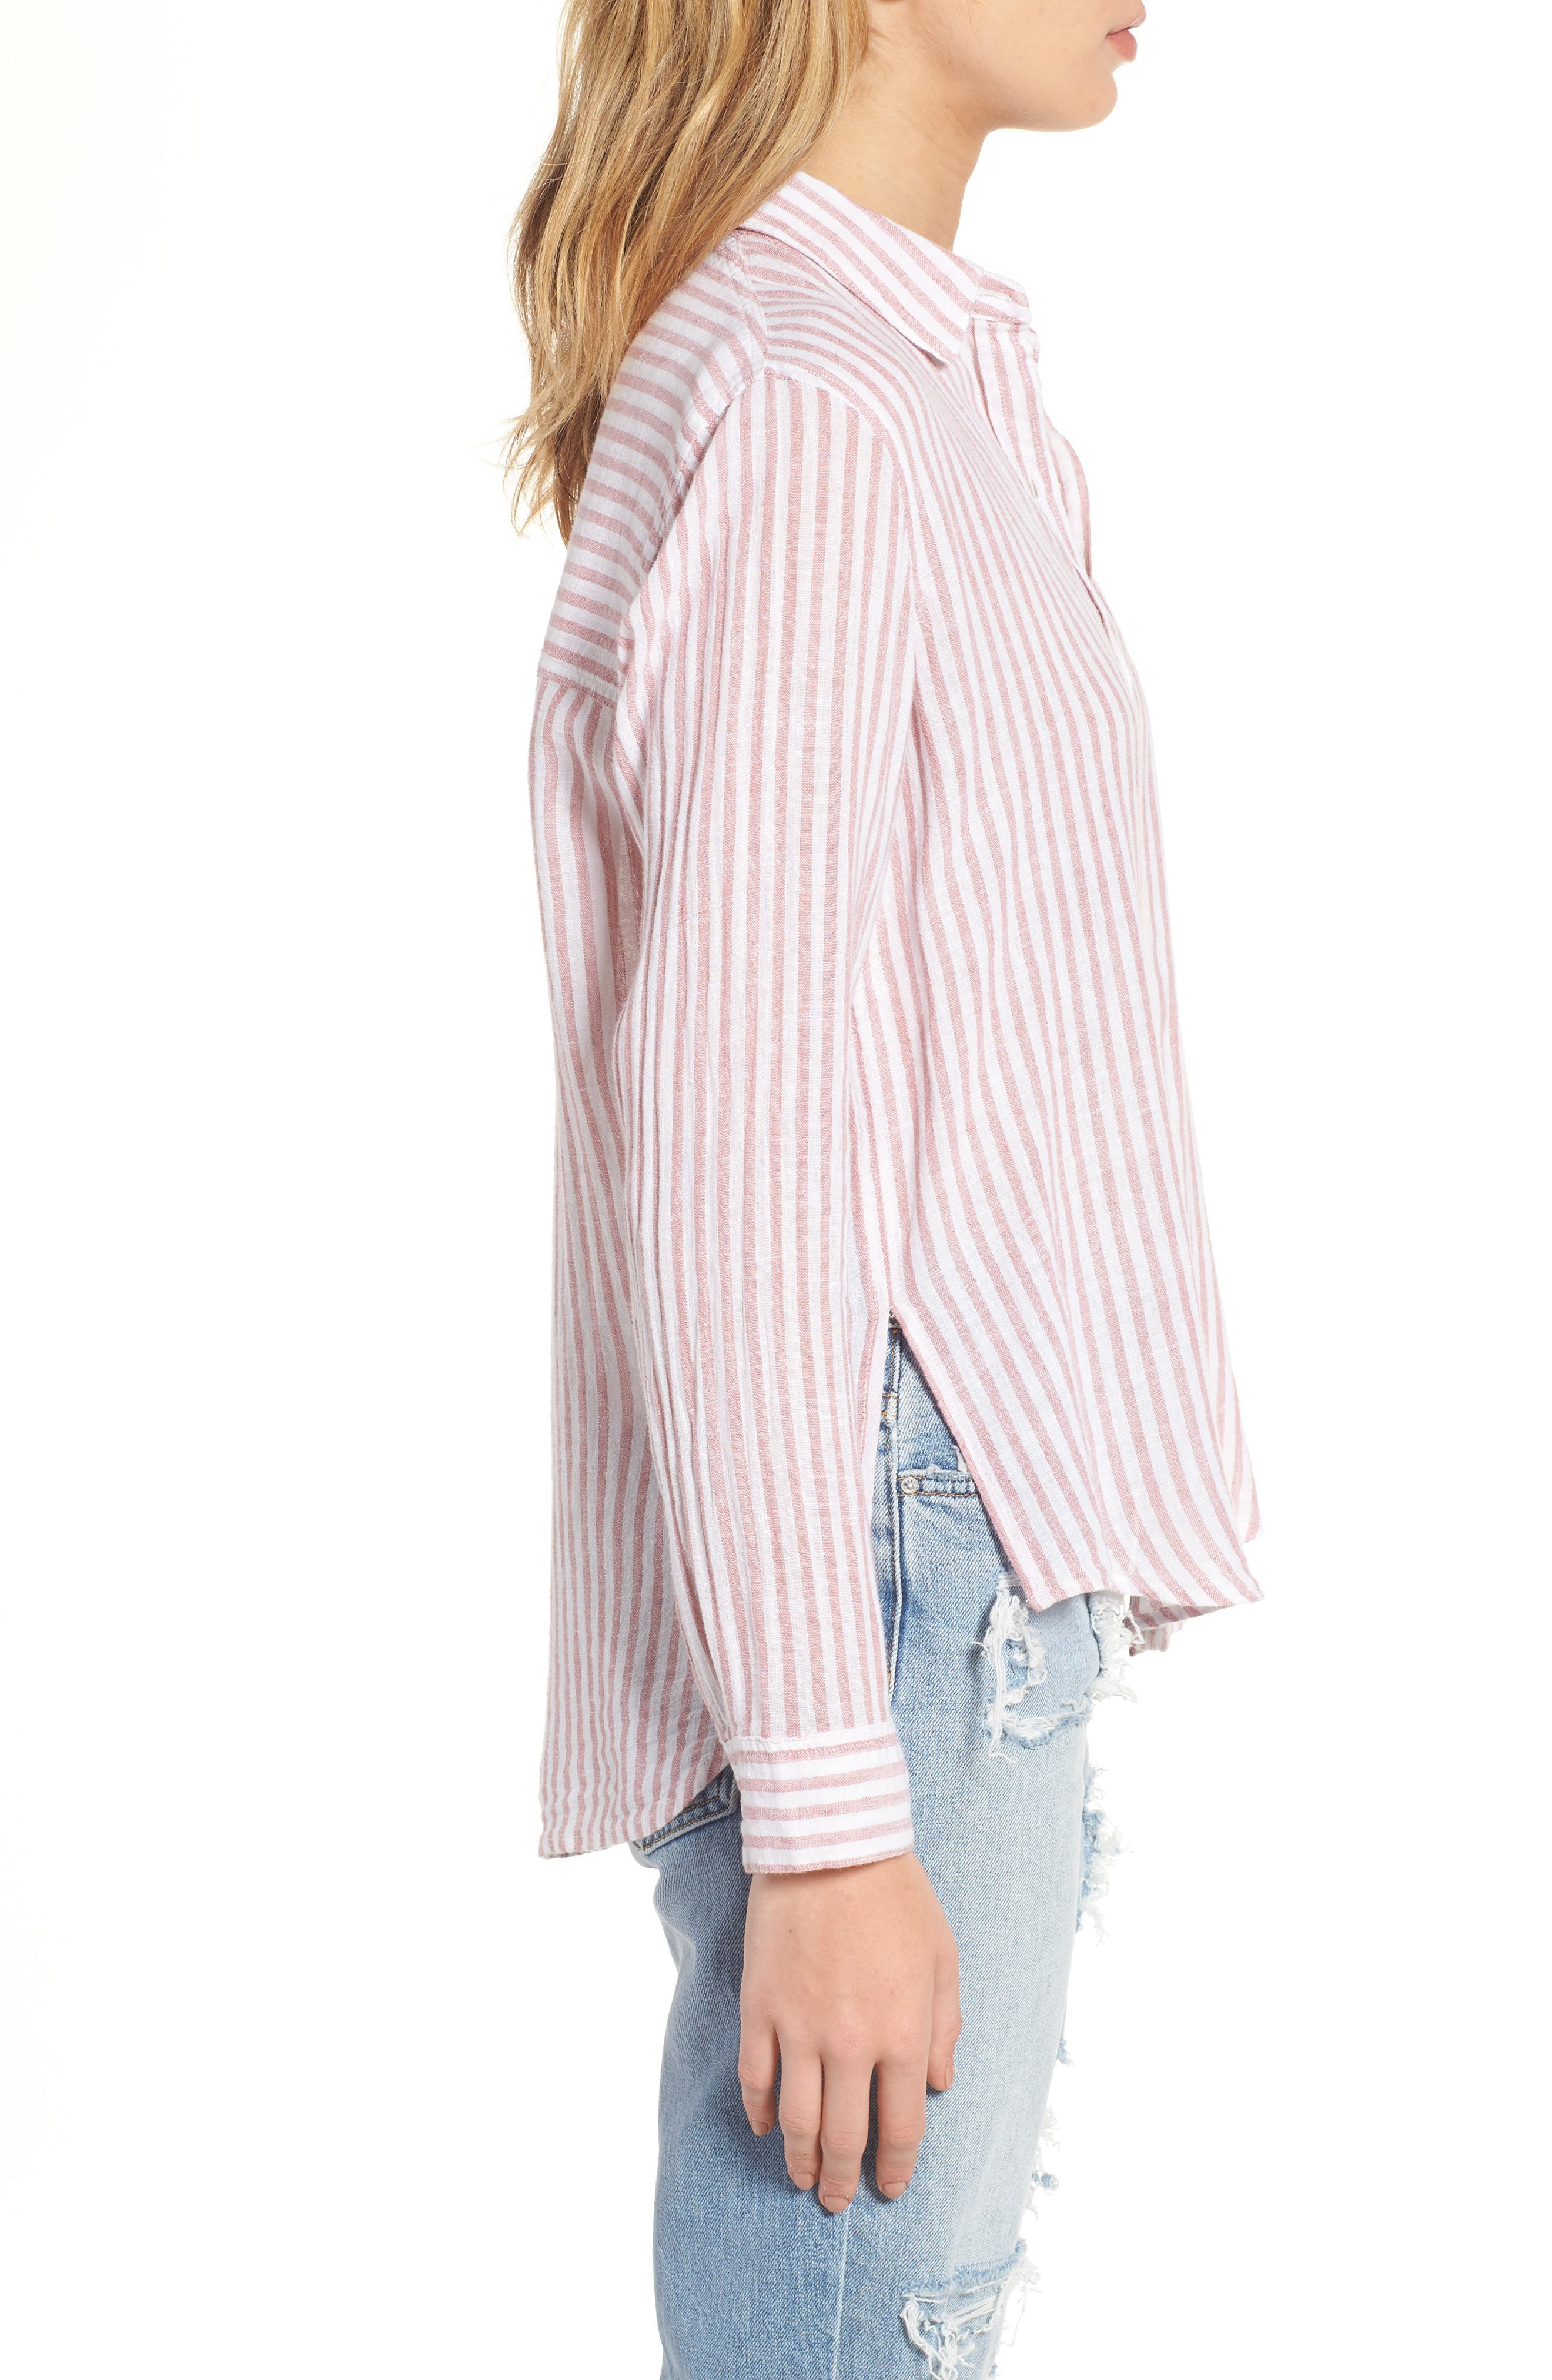 Sydney Stripe Linen Blend Shirt,                             Alternate thumbnail 3, color,                             Florence Stripe